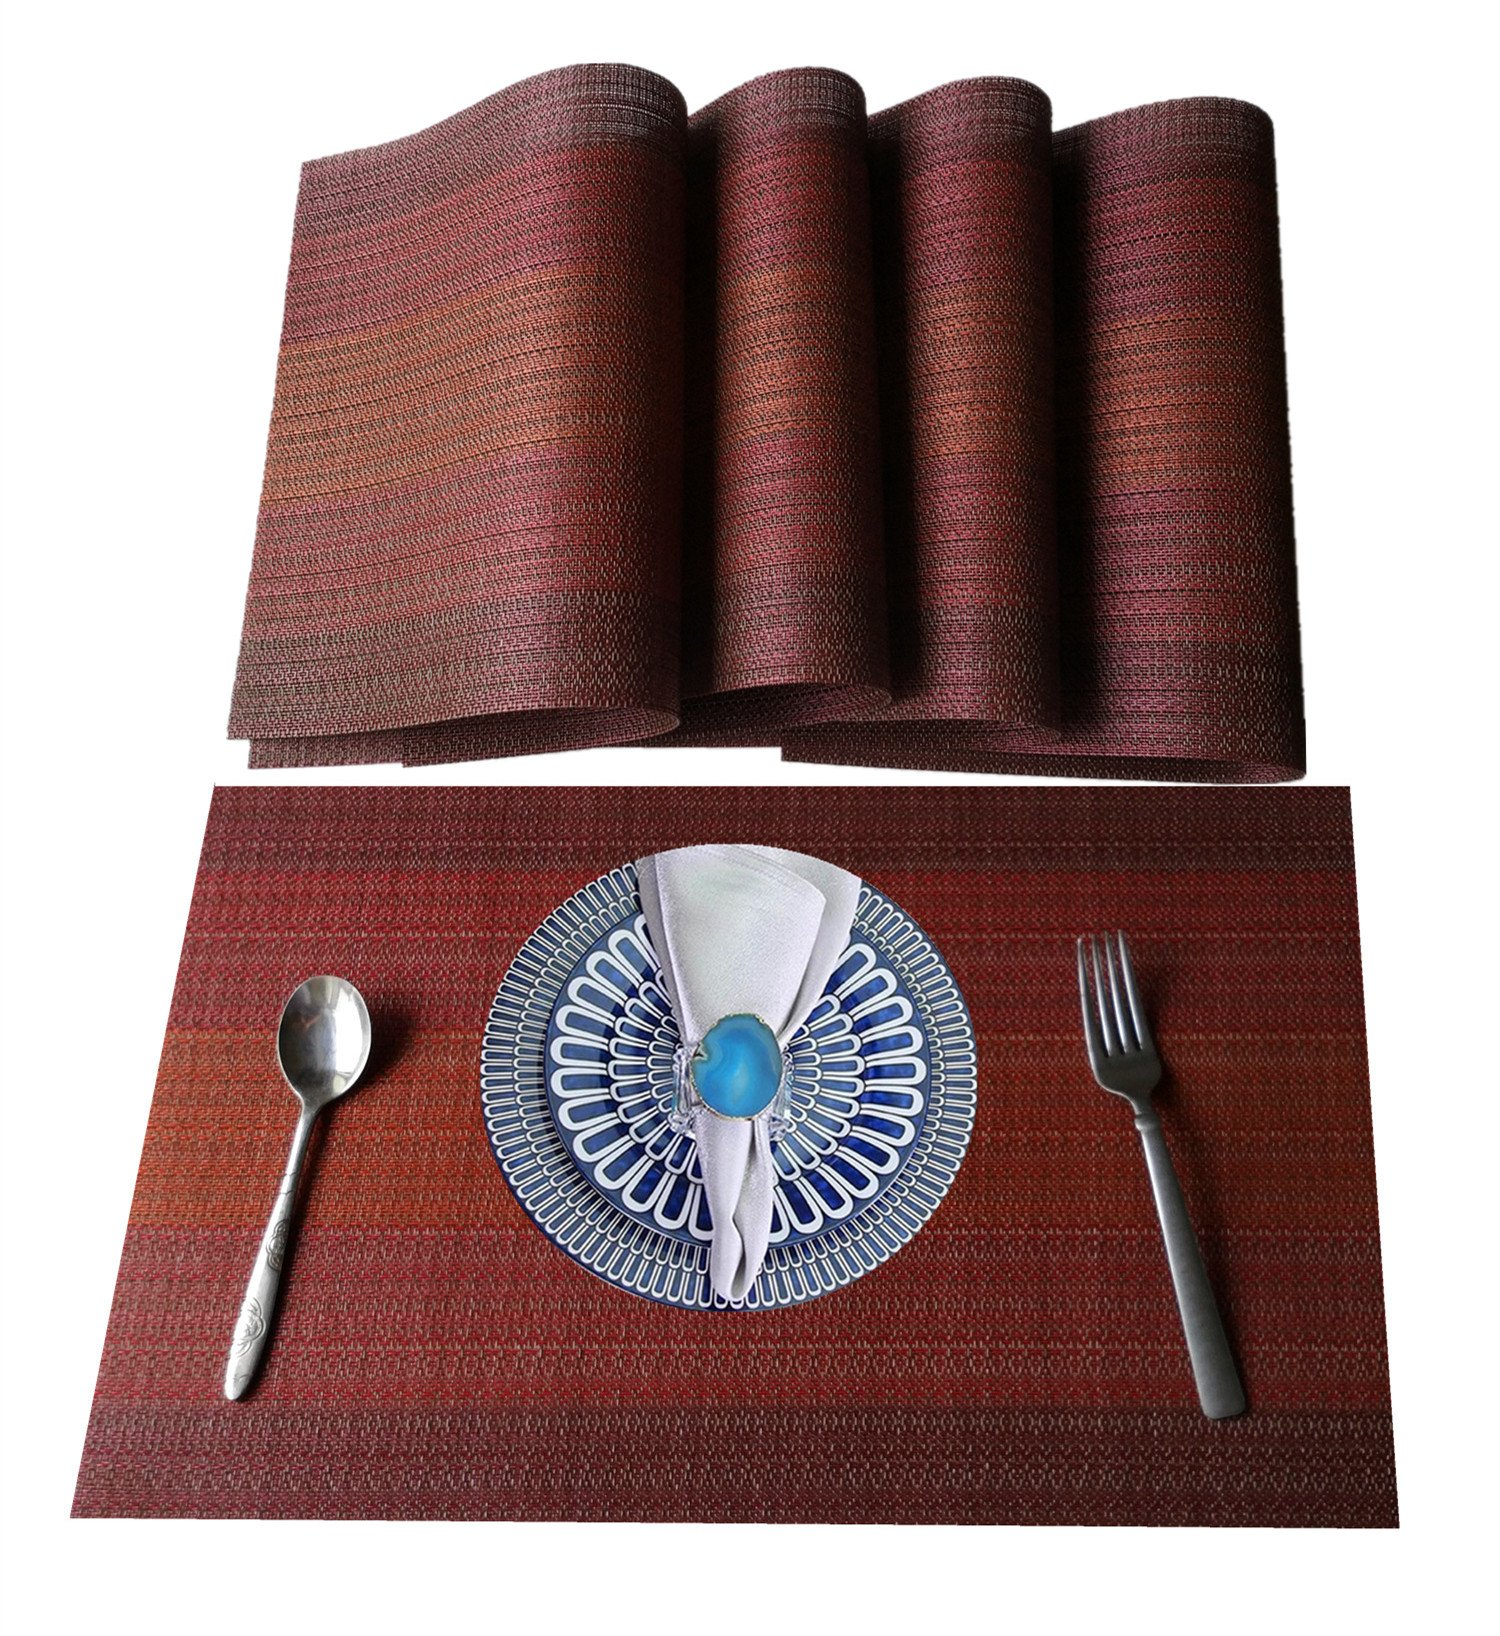 "WANGCHAO Placemats Set of 8 Heat Insulation Stain Resistant Placemat for Dining Table Durable Crossweave Woven Vinyl… - Woven Vinyl/crossweave,PACKAGE Include 8 pcs of placemats,each measures:18""X12""(45cmX30cm); NEW DESIGN:Top-grade exquisite design placemats feel good would be the best decoration and Protection to your tables if yo have children. EASY CARE:Washable table placemat,non-fading,non-stain,Not mildew,Wipe Clean,and dries very quickly; - placemats, kitchen-dining-room-table-linens, kitchen-dining-room - 91rVqRC 6YL -"